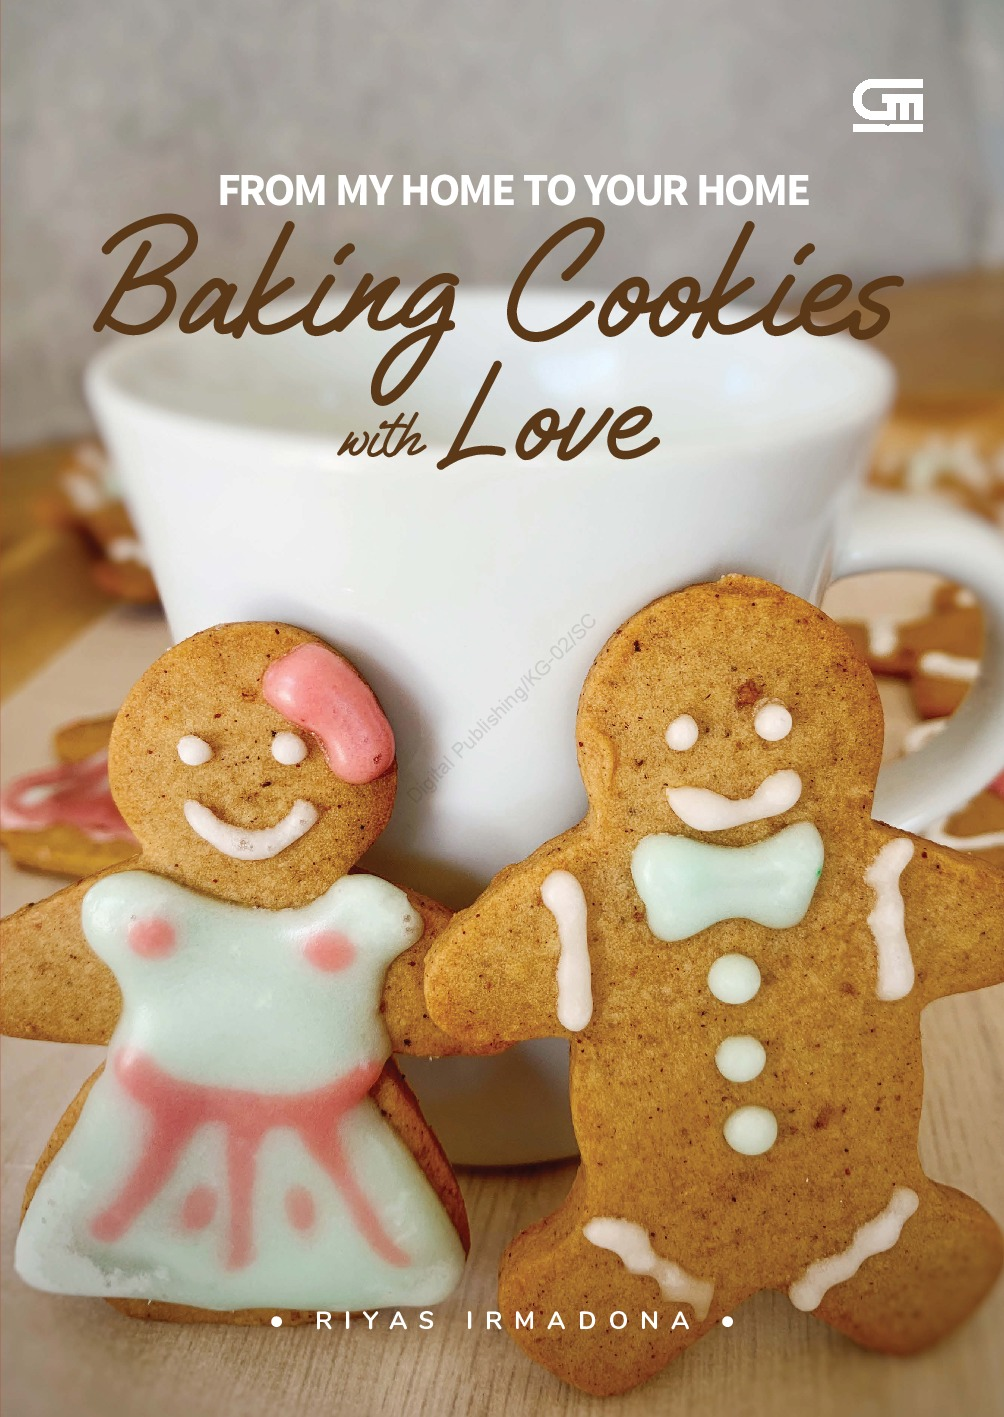 Baking Cookies with Love - From my Home to Your Home